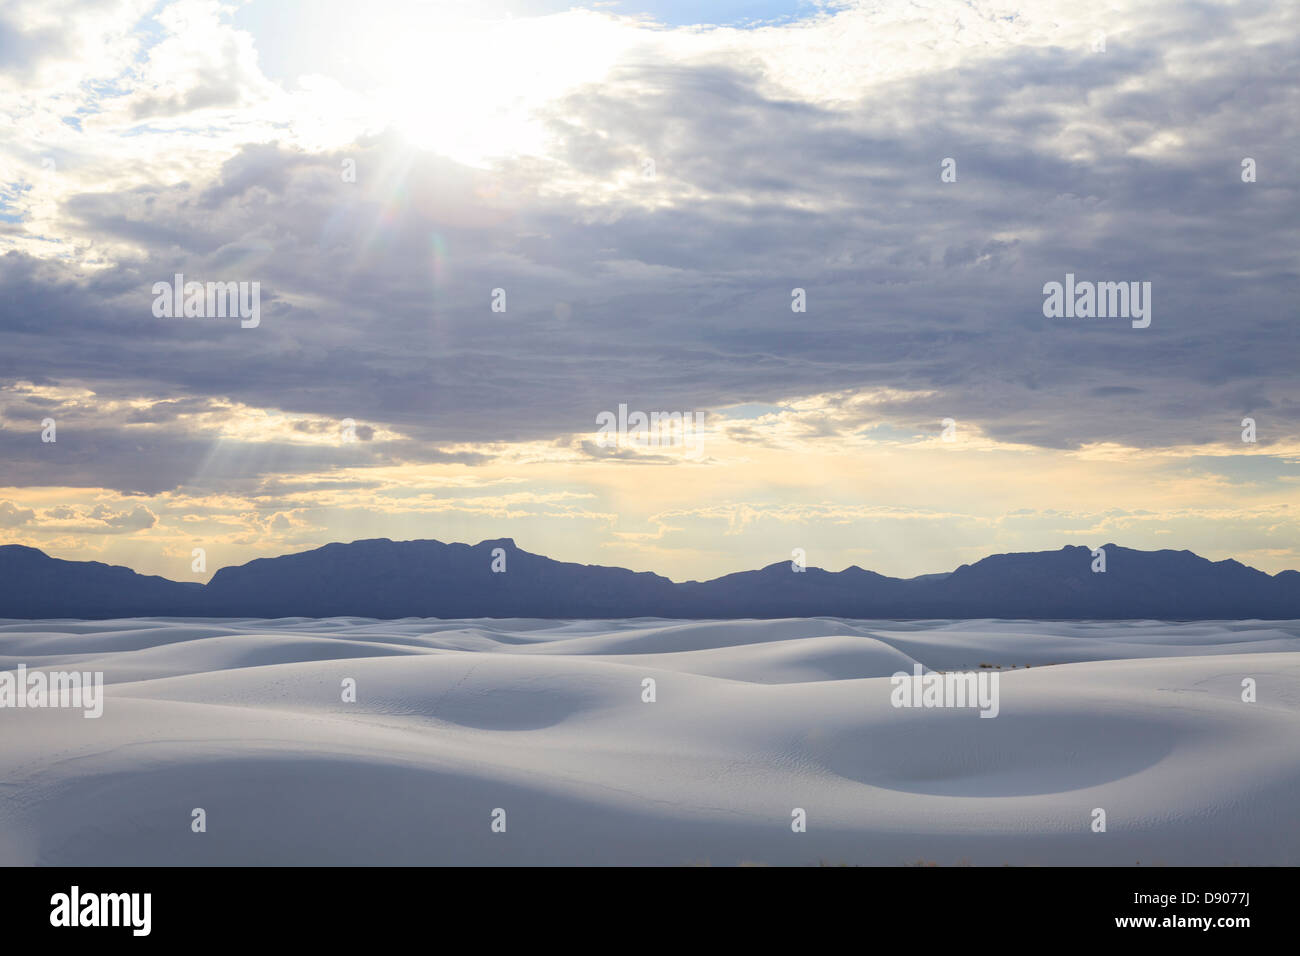 USA, New Mexico, White Sands National Monum - Stock Image